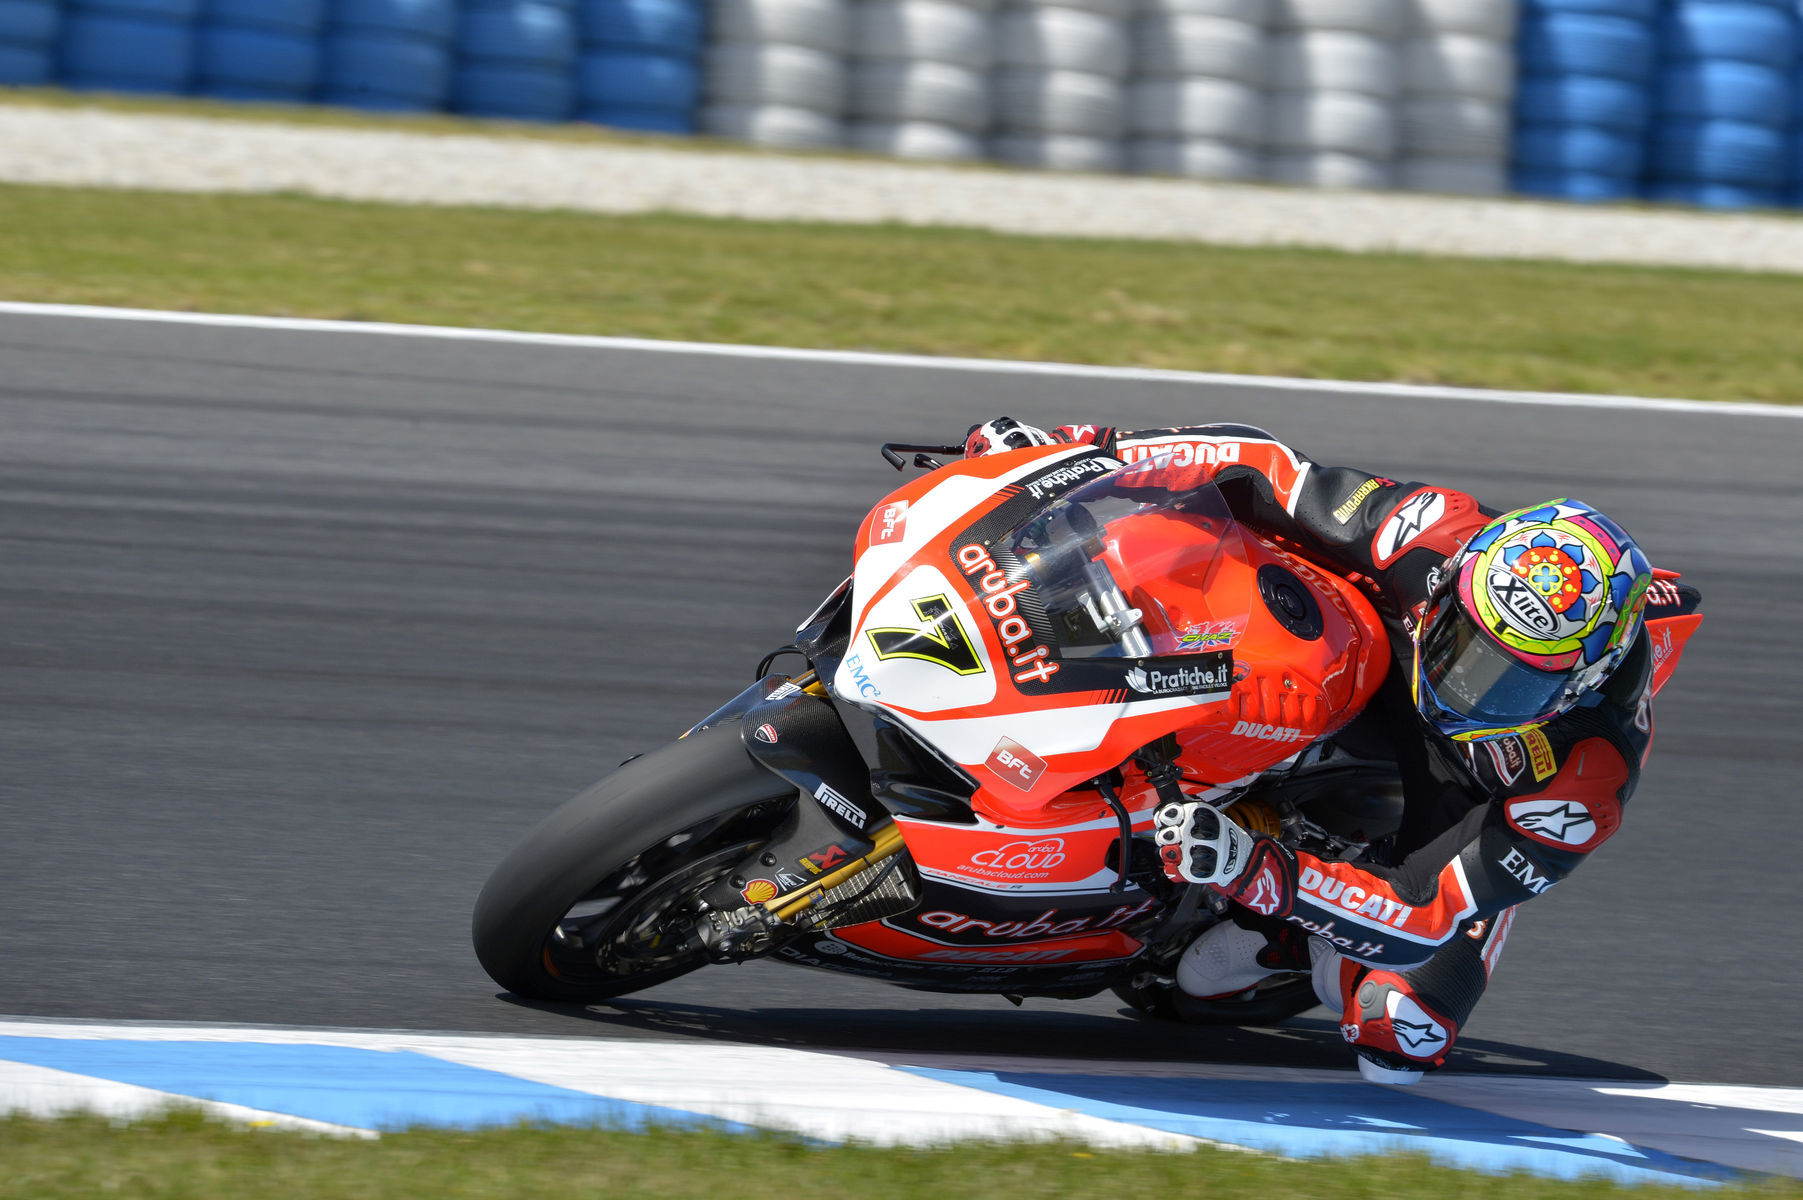 2015 Ducati Panigale R | 2015 Aruba.it Racing-Ducati Superbike Season